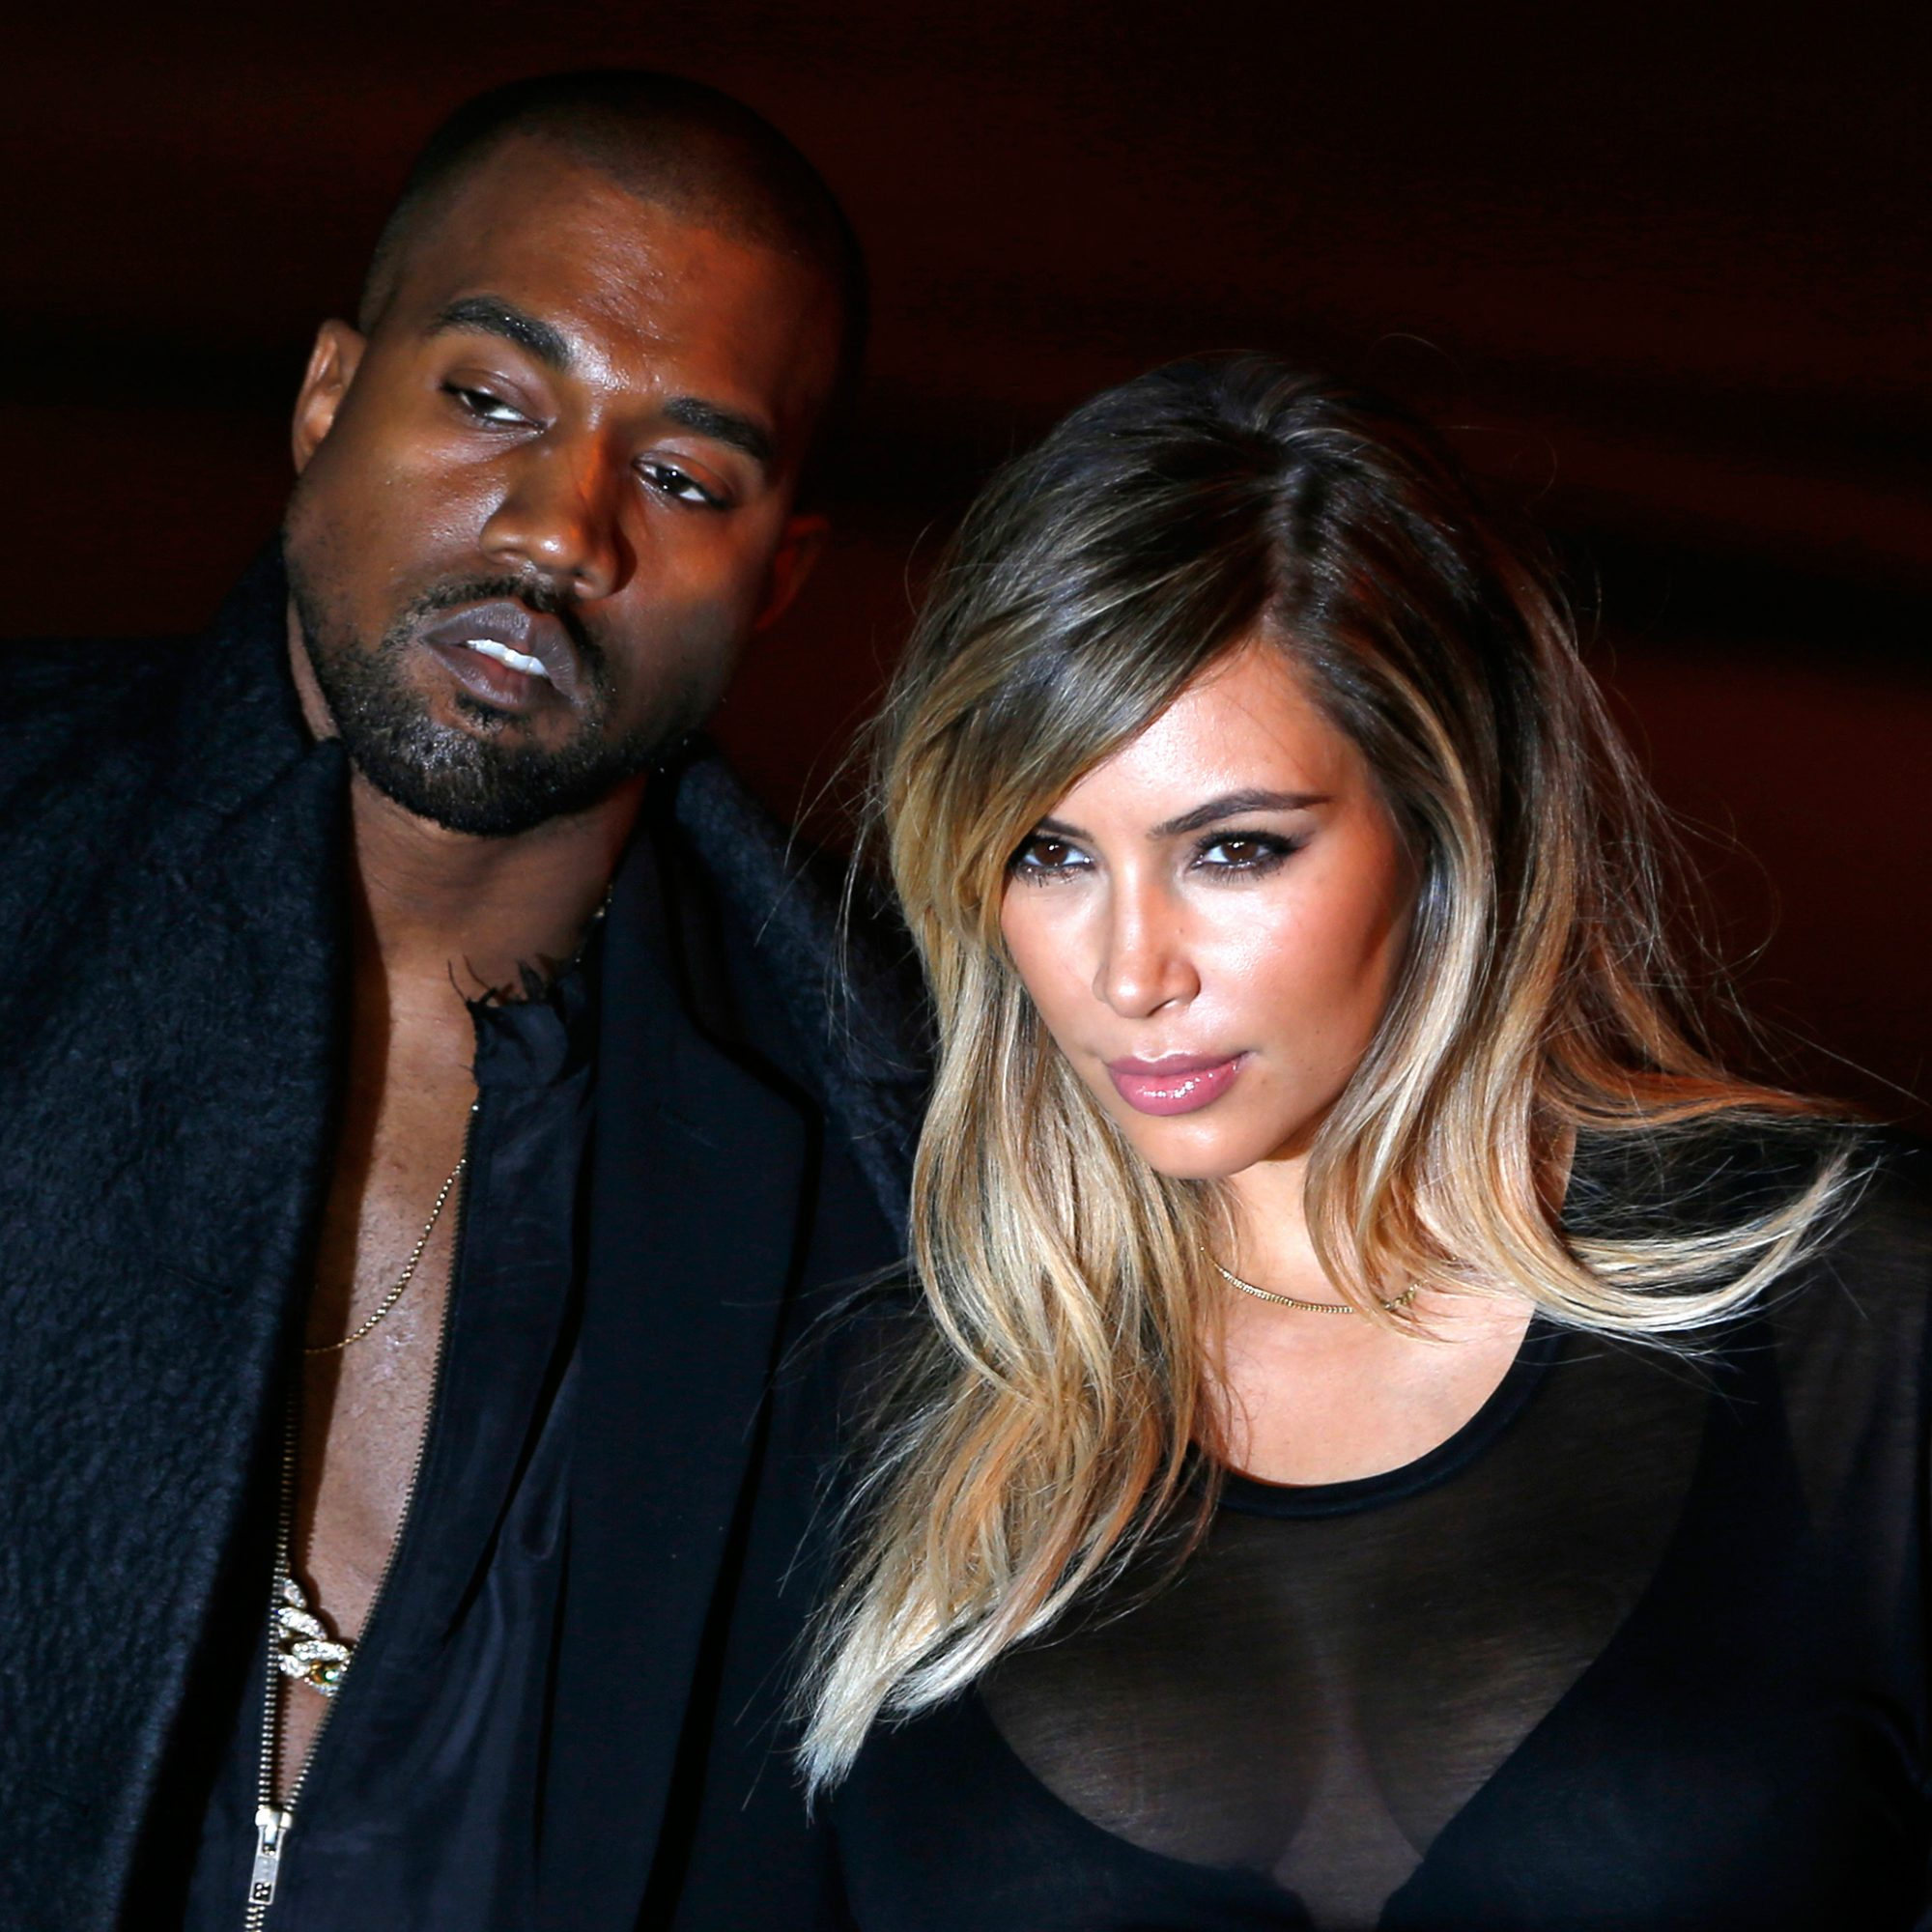 Kanye West Is Going to Make His Own Wine